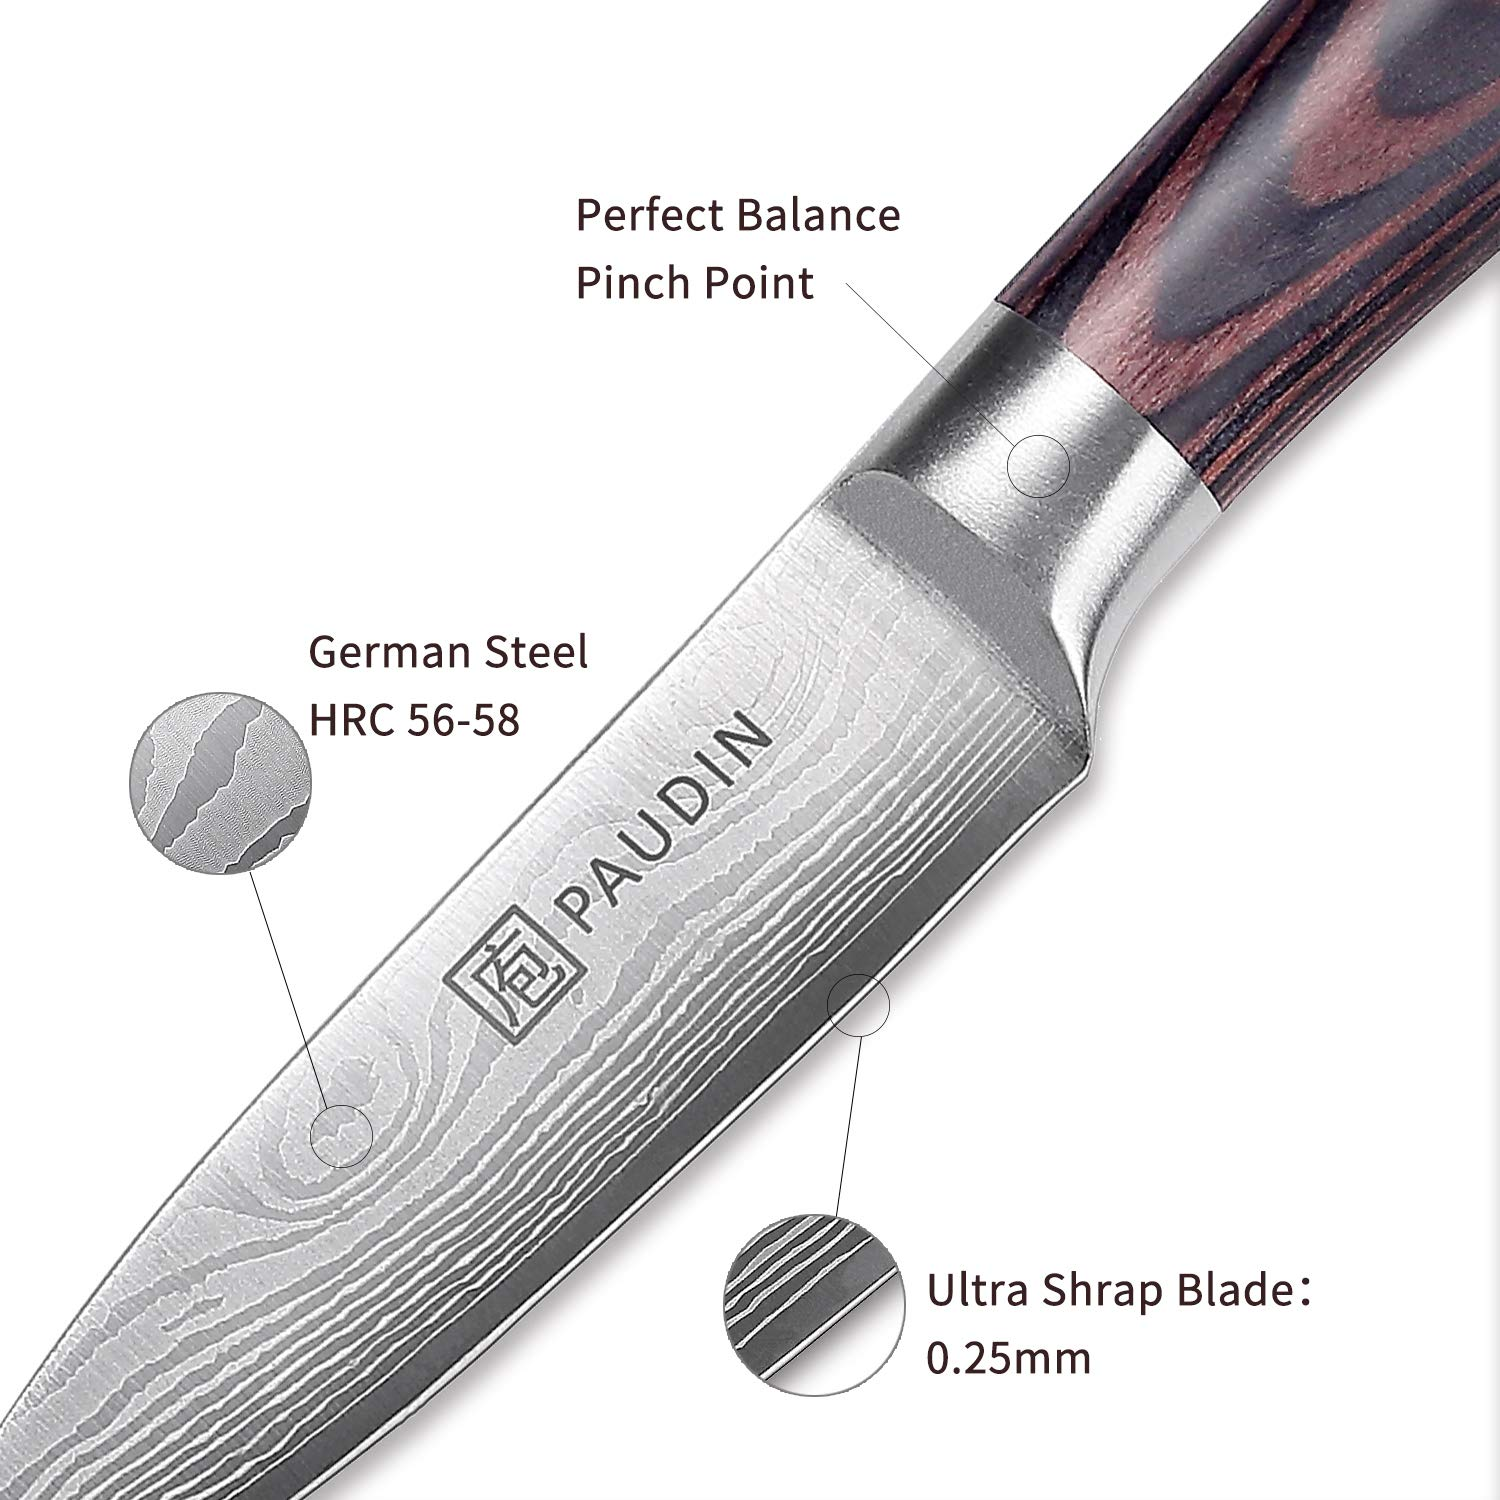 Paring Knife - PAUDIN 3.5 Inch Kitchen Knife N8 German High Carbon Stainless Steel Knife, Fruit and Vegetable Cutting Chopping Carving Knives by PAUDIN (Image #4)